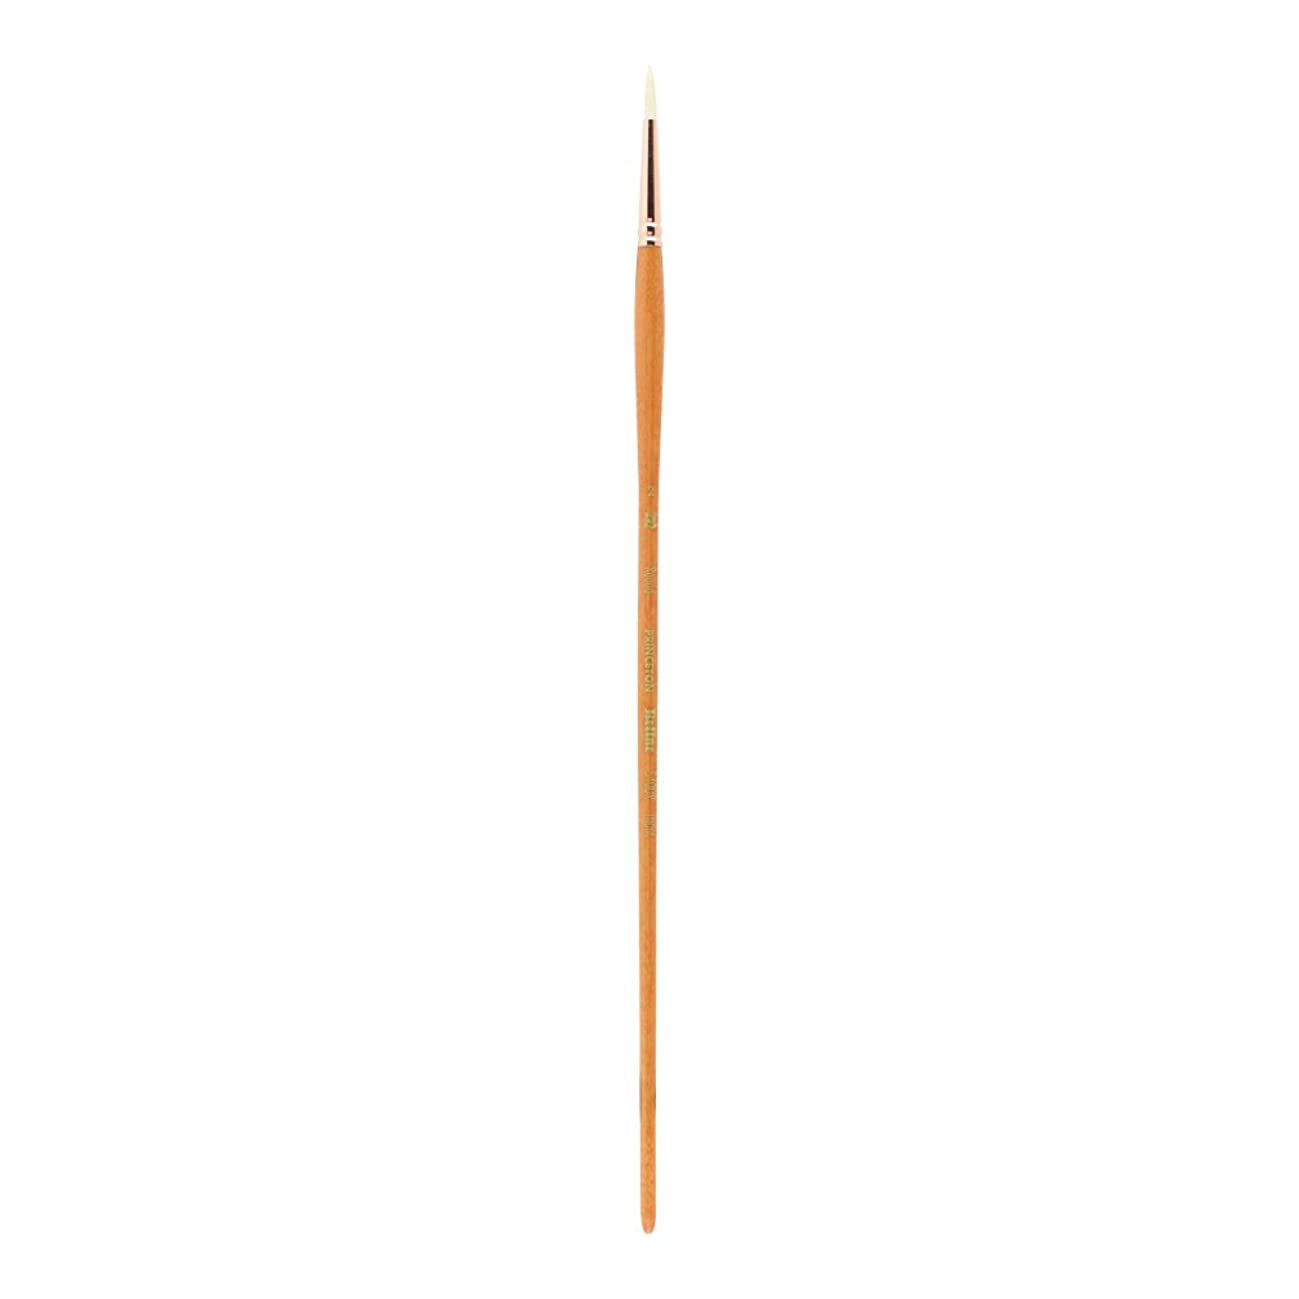 Princeton Refine Artist Brush, Brushes for Oil and Acrylic Paint, Series 5400 Natural Chunking Bristle, Round, Size 2